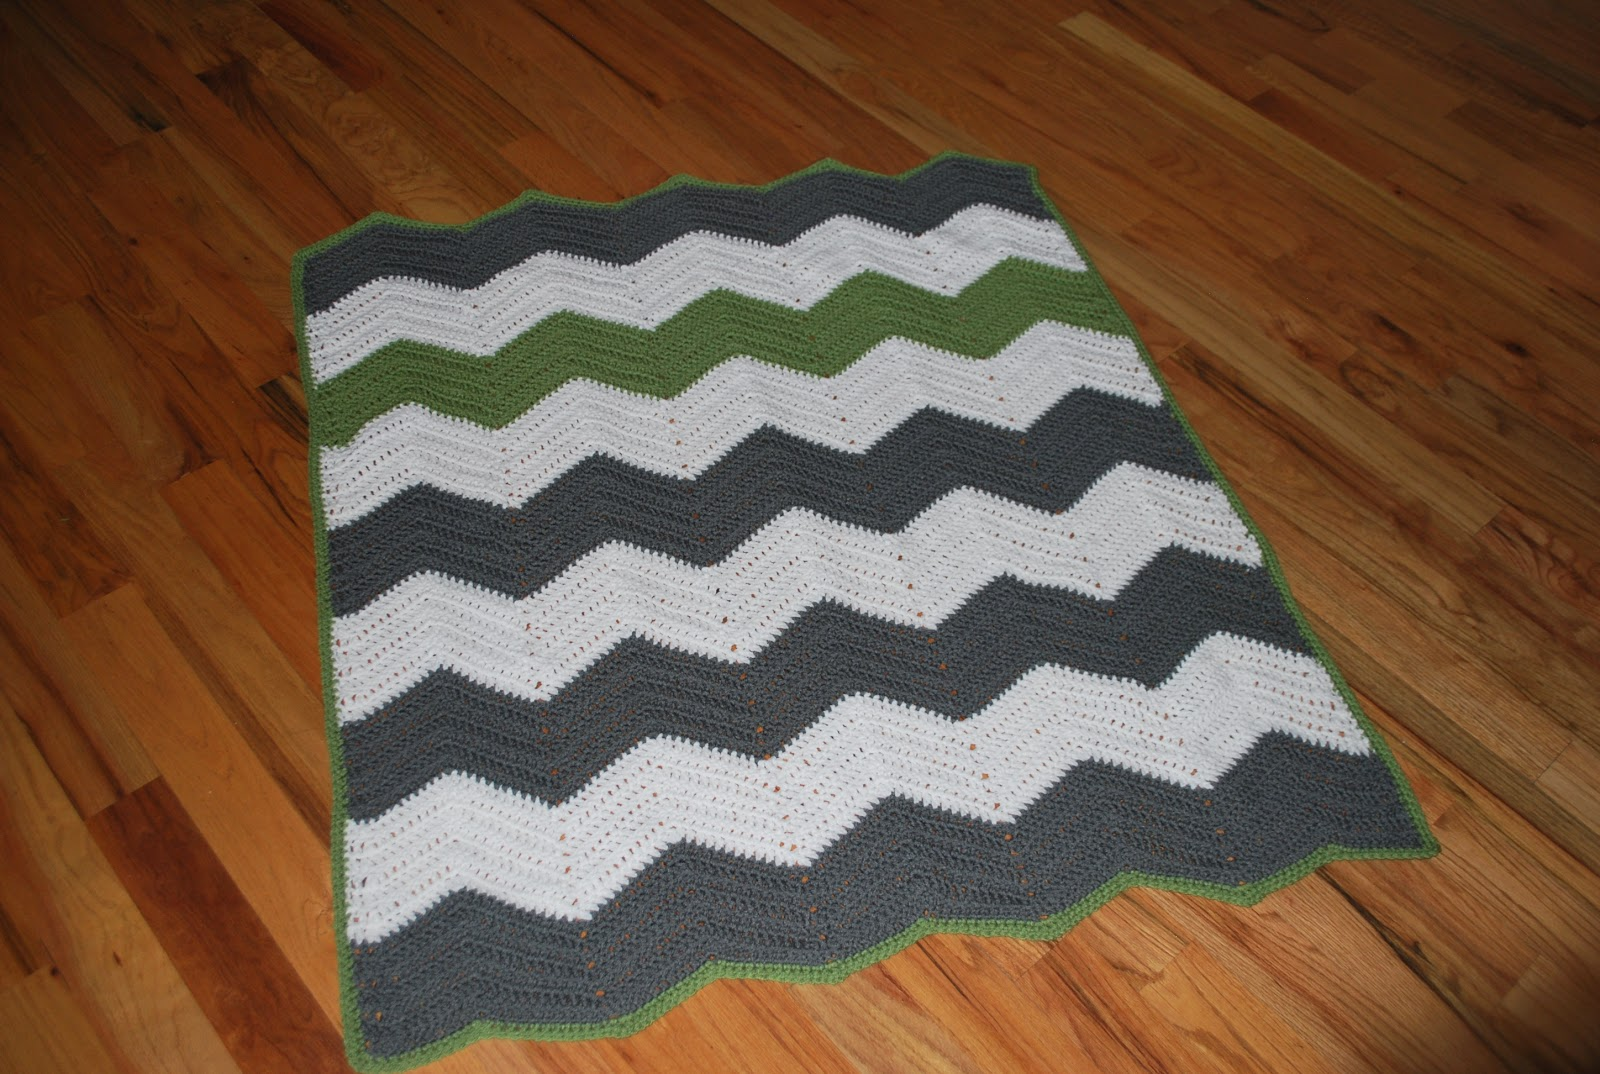 Free Pattern Crochet Chevron Baby Blanket : Creative Highs: Crochet Chevron Blanket Free Pattern